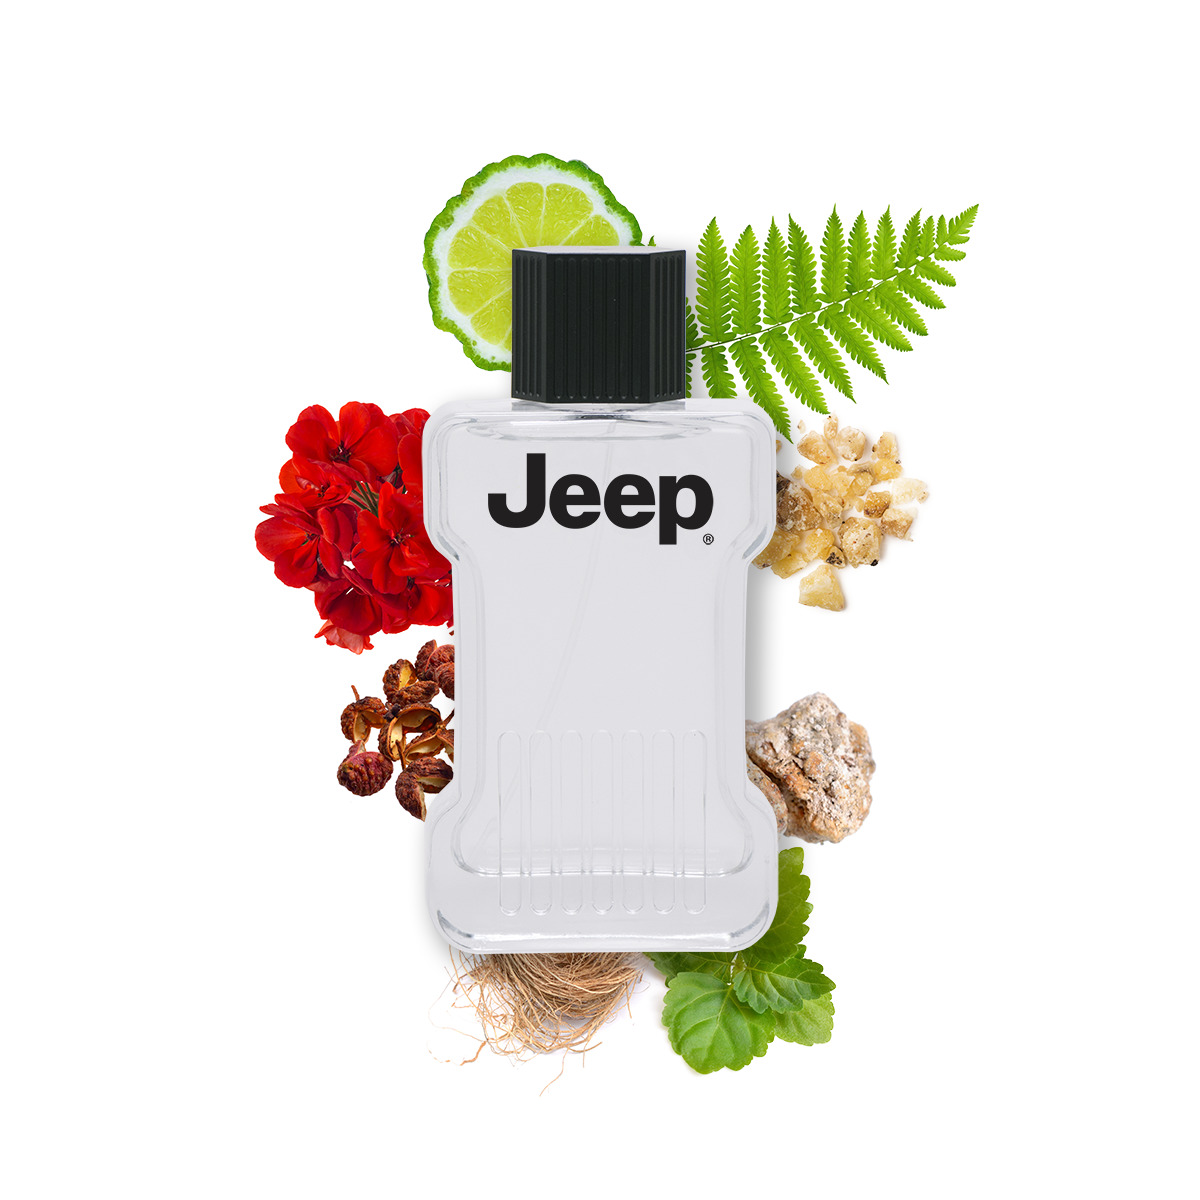 Jeep Freedom Eau de Toilette